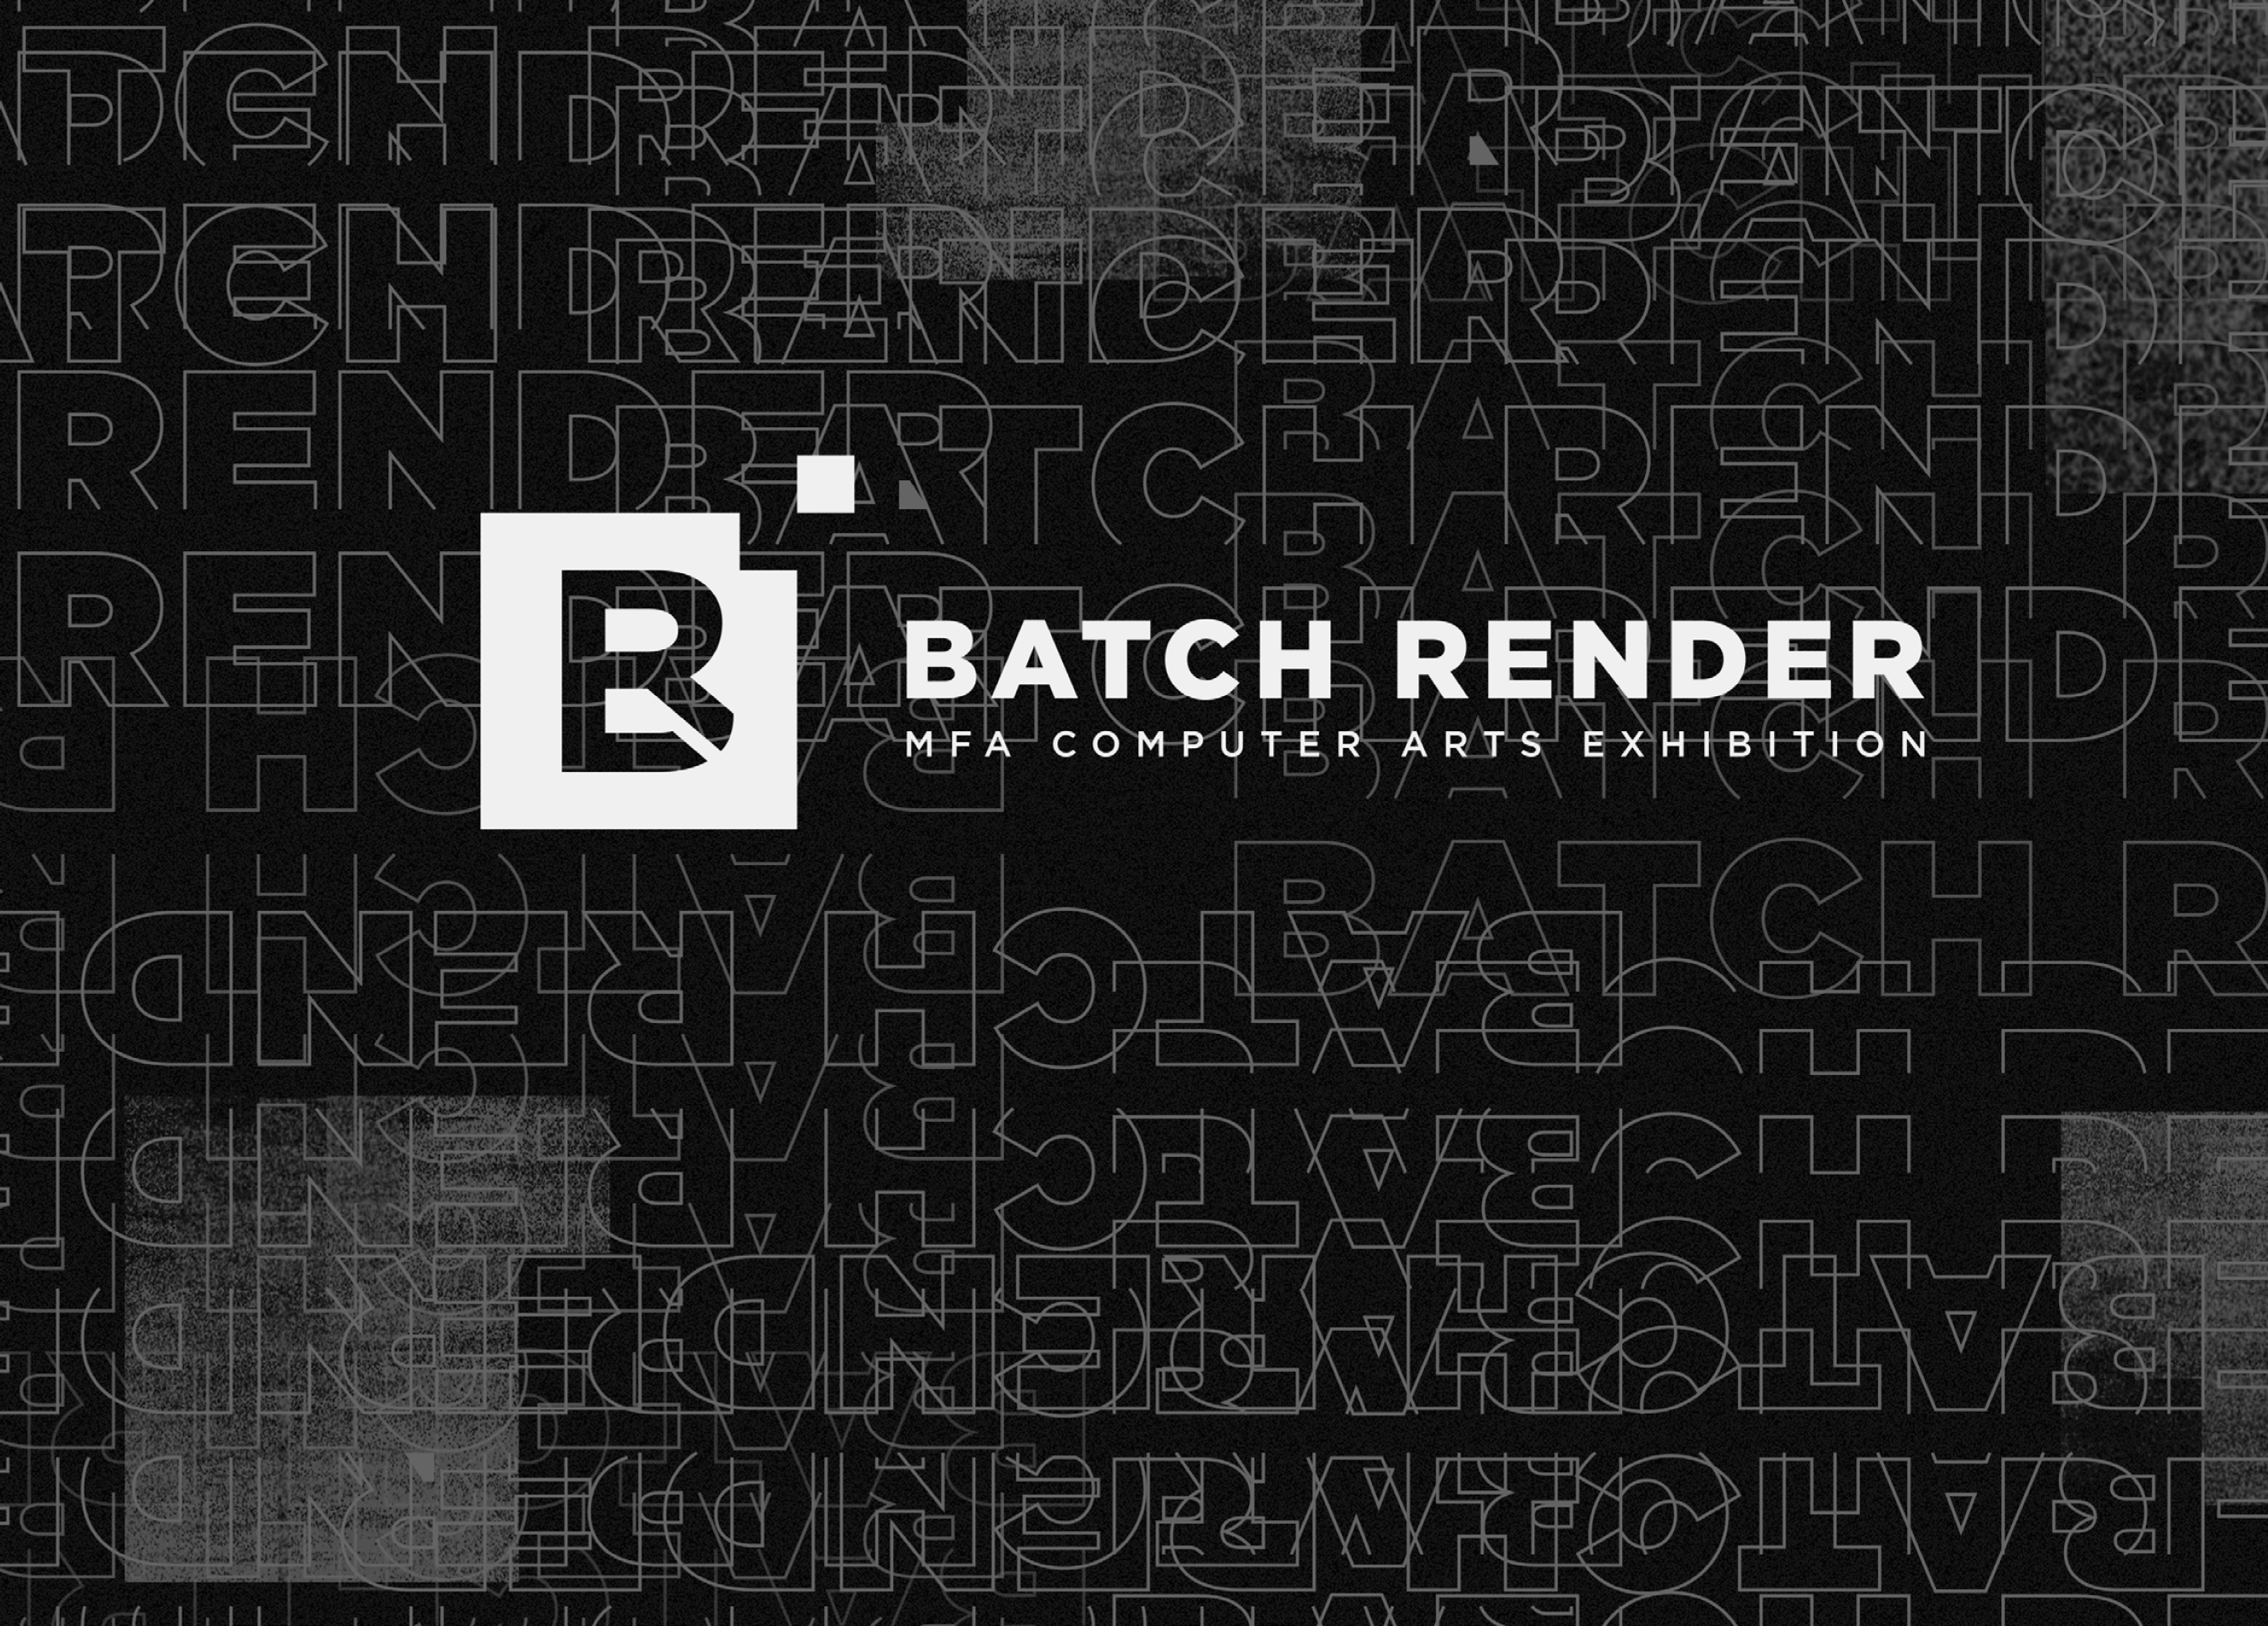 Poster of Batch Render in black and white with the text Batch Render repeating itself